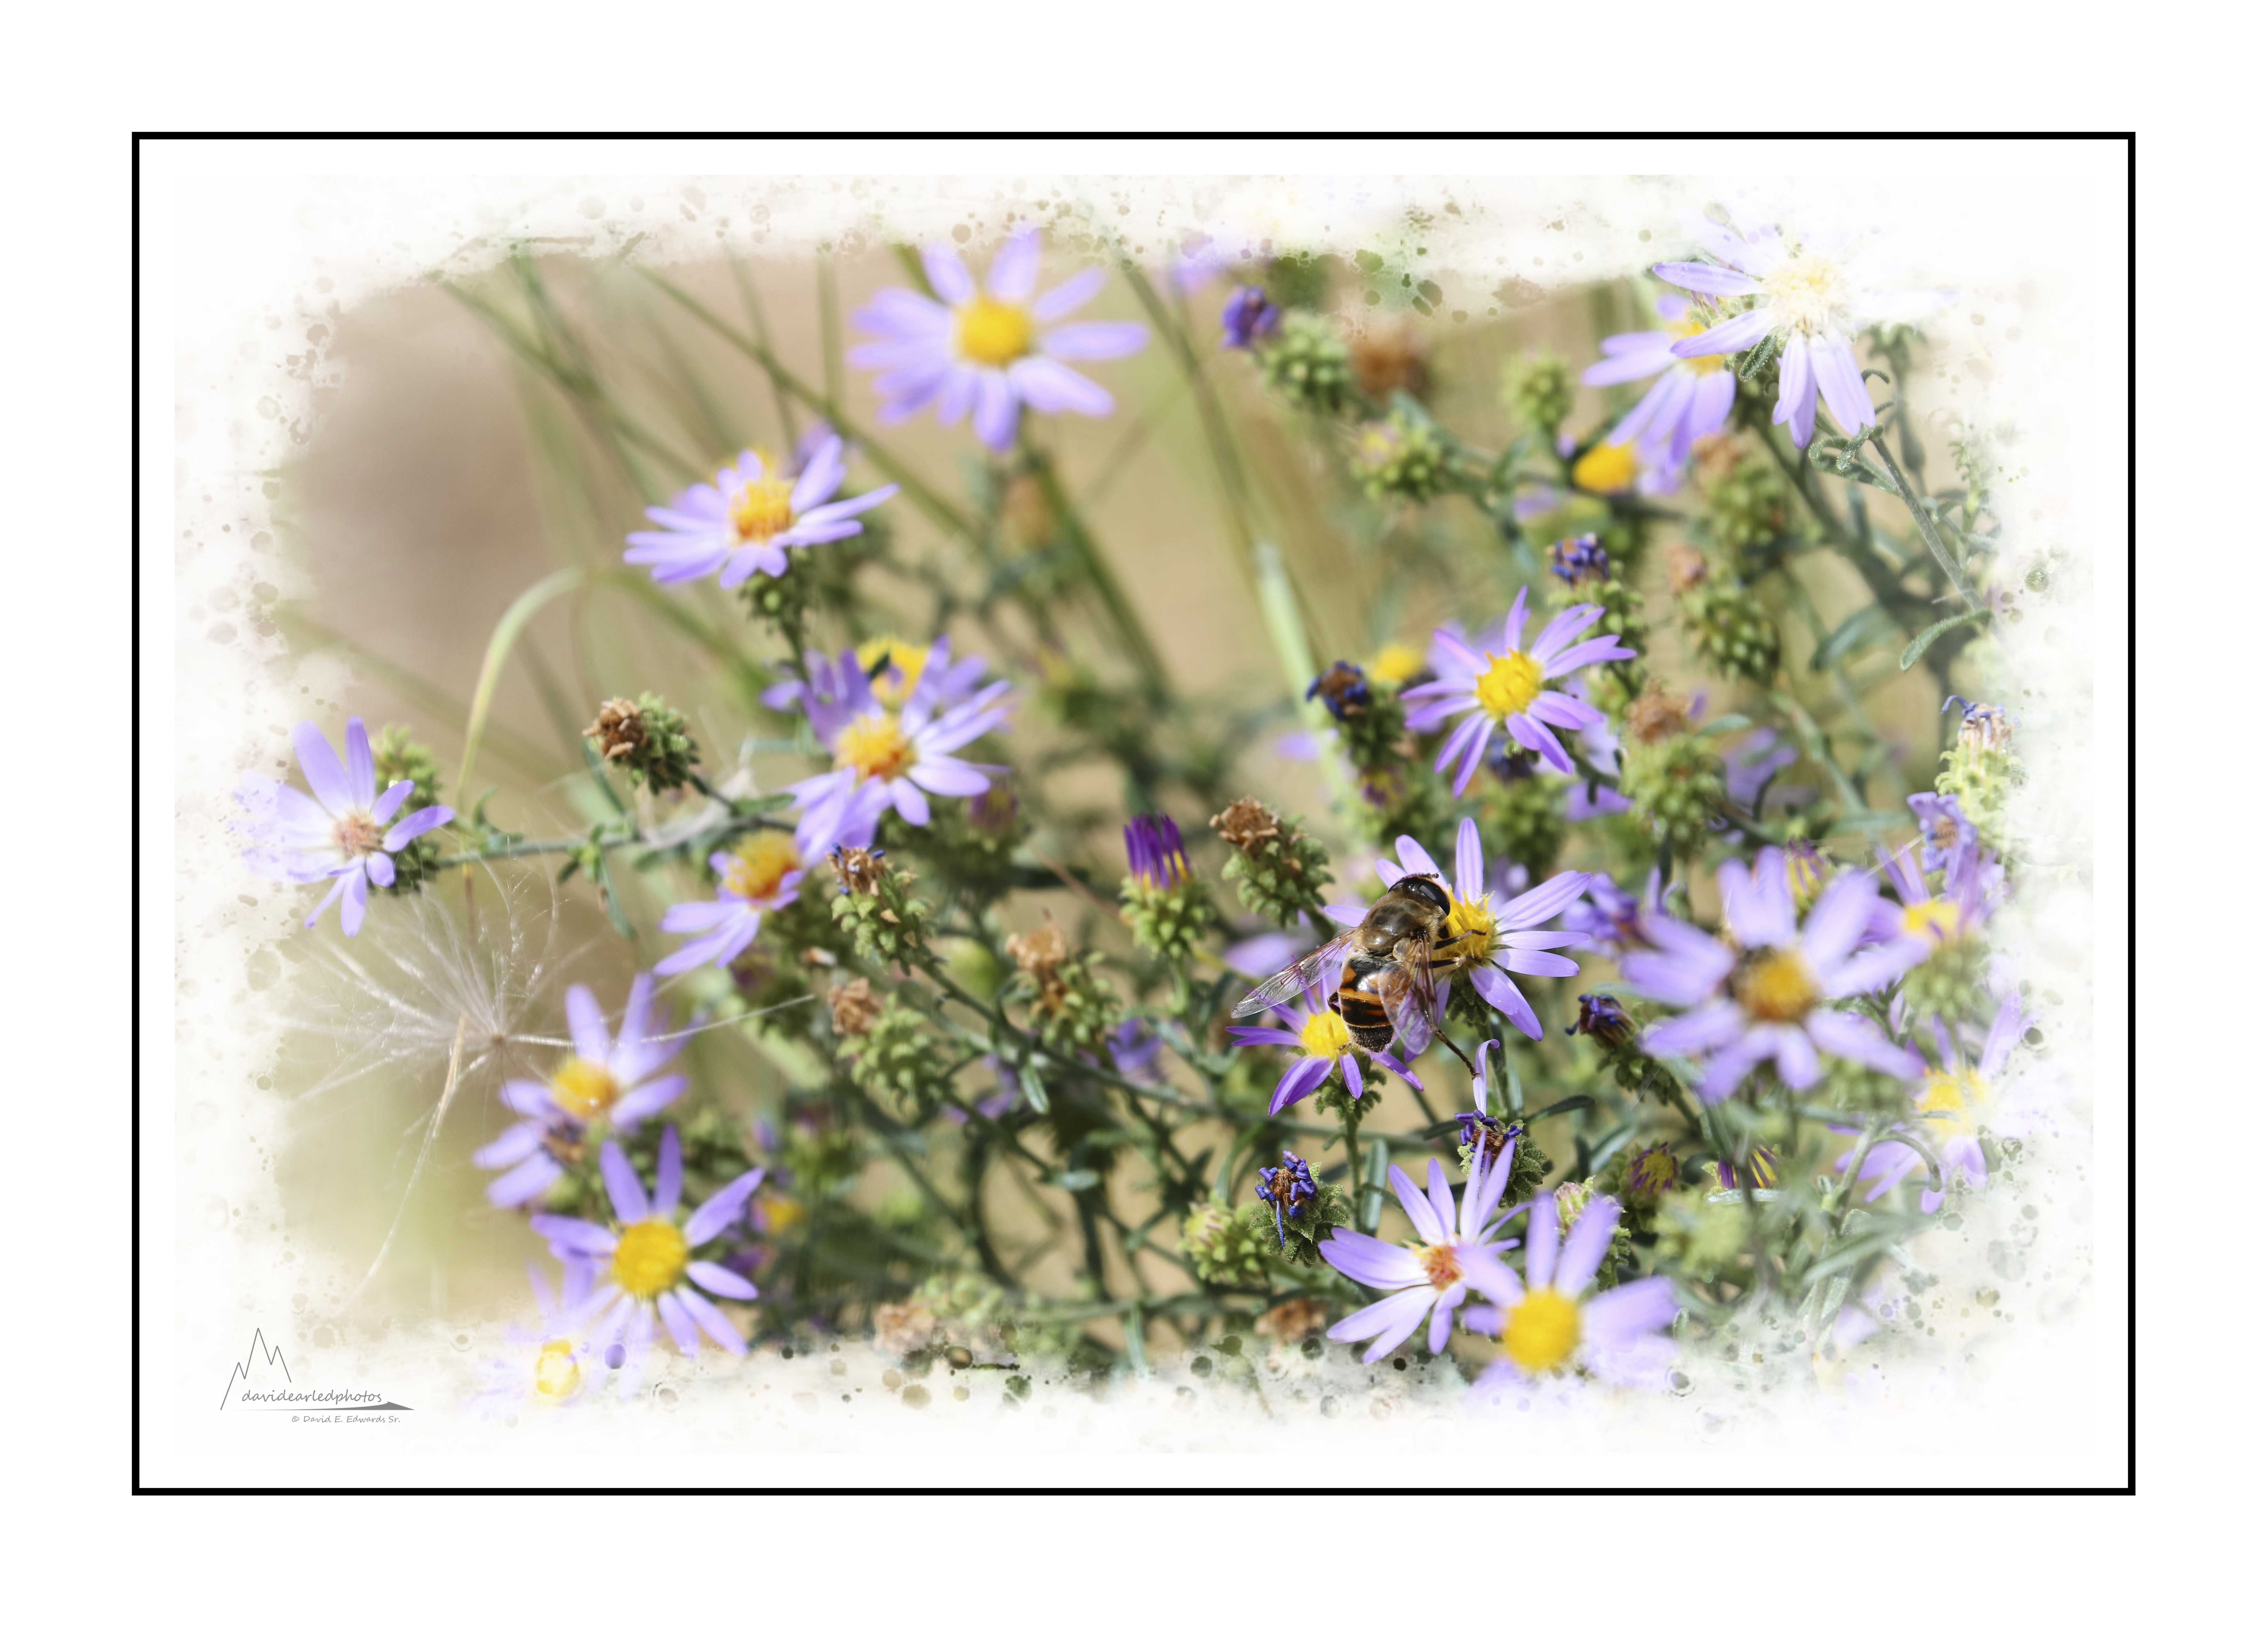 Wildflowers and bee in Yellowstone